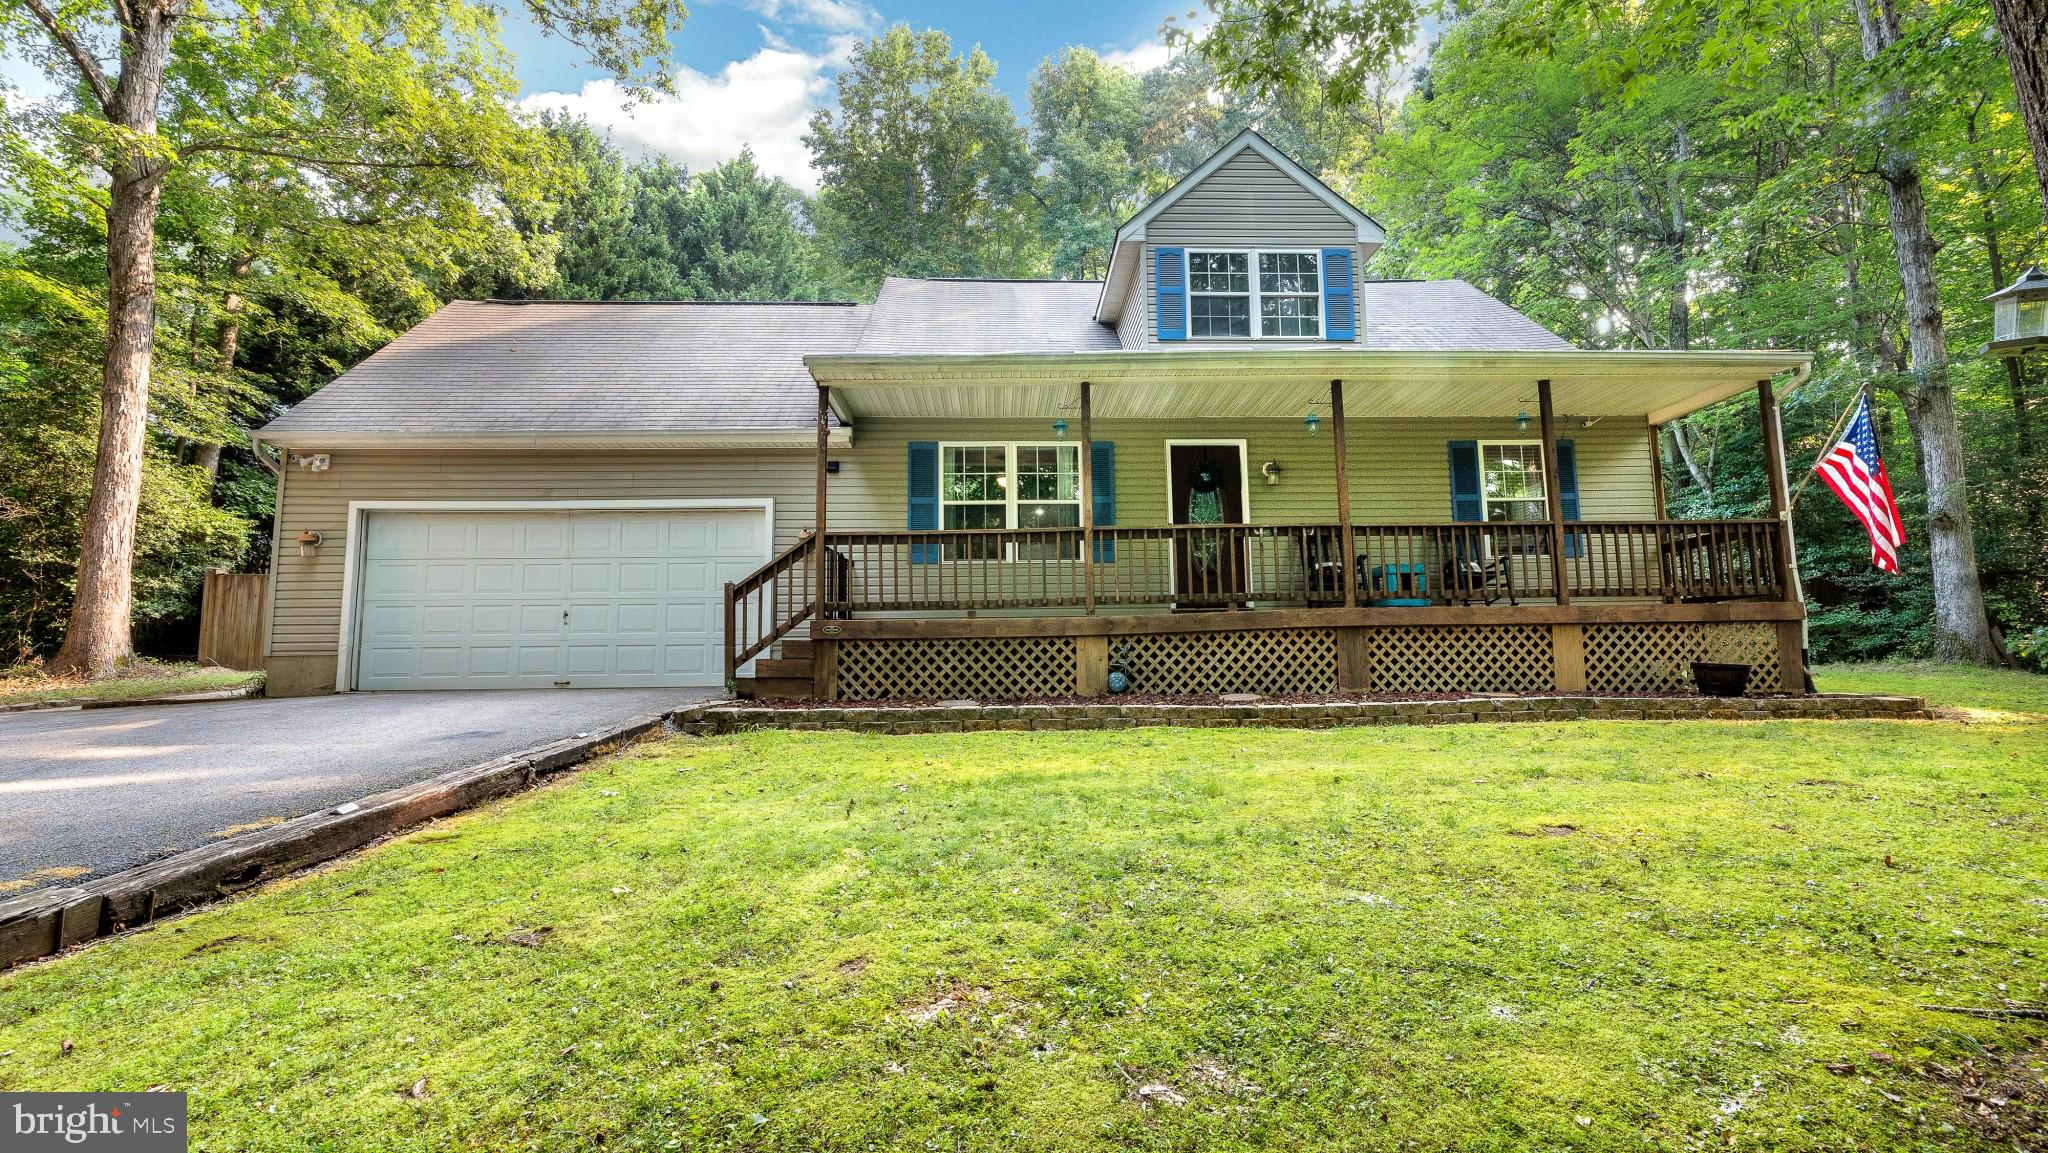 Don't miss your chance to own this adorable cape cod with a 2 car garage! This well maintained home